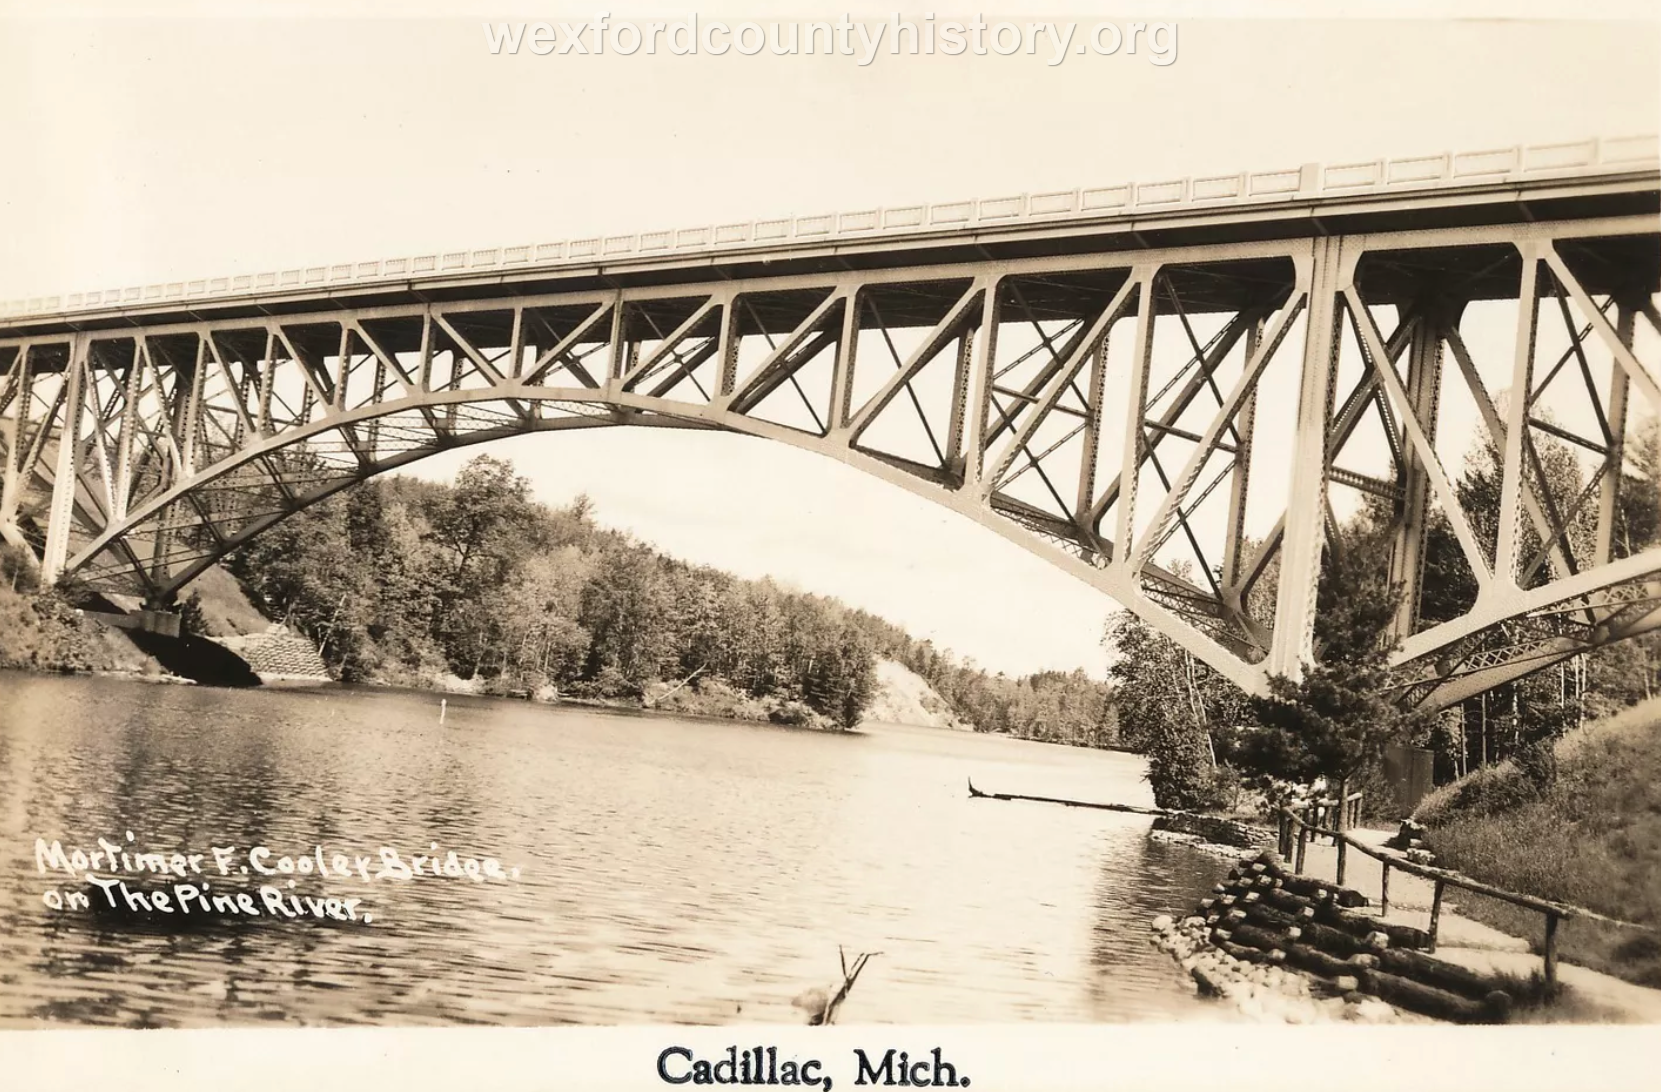 Cadillac-Structure-Mortimer-Cooley-Bridge